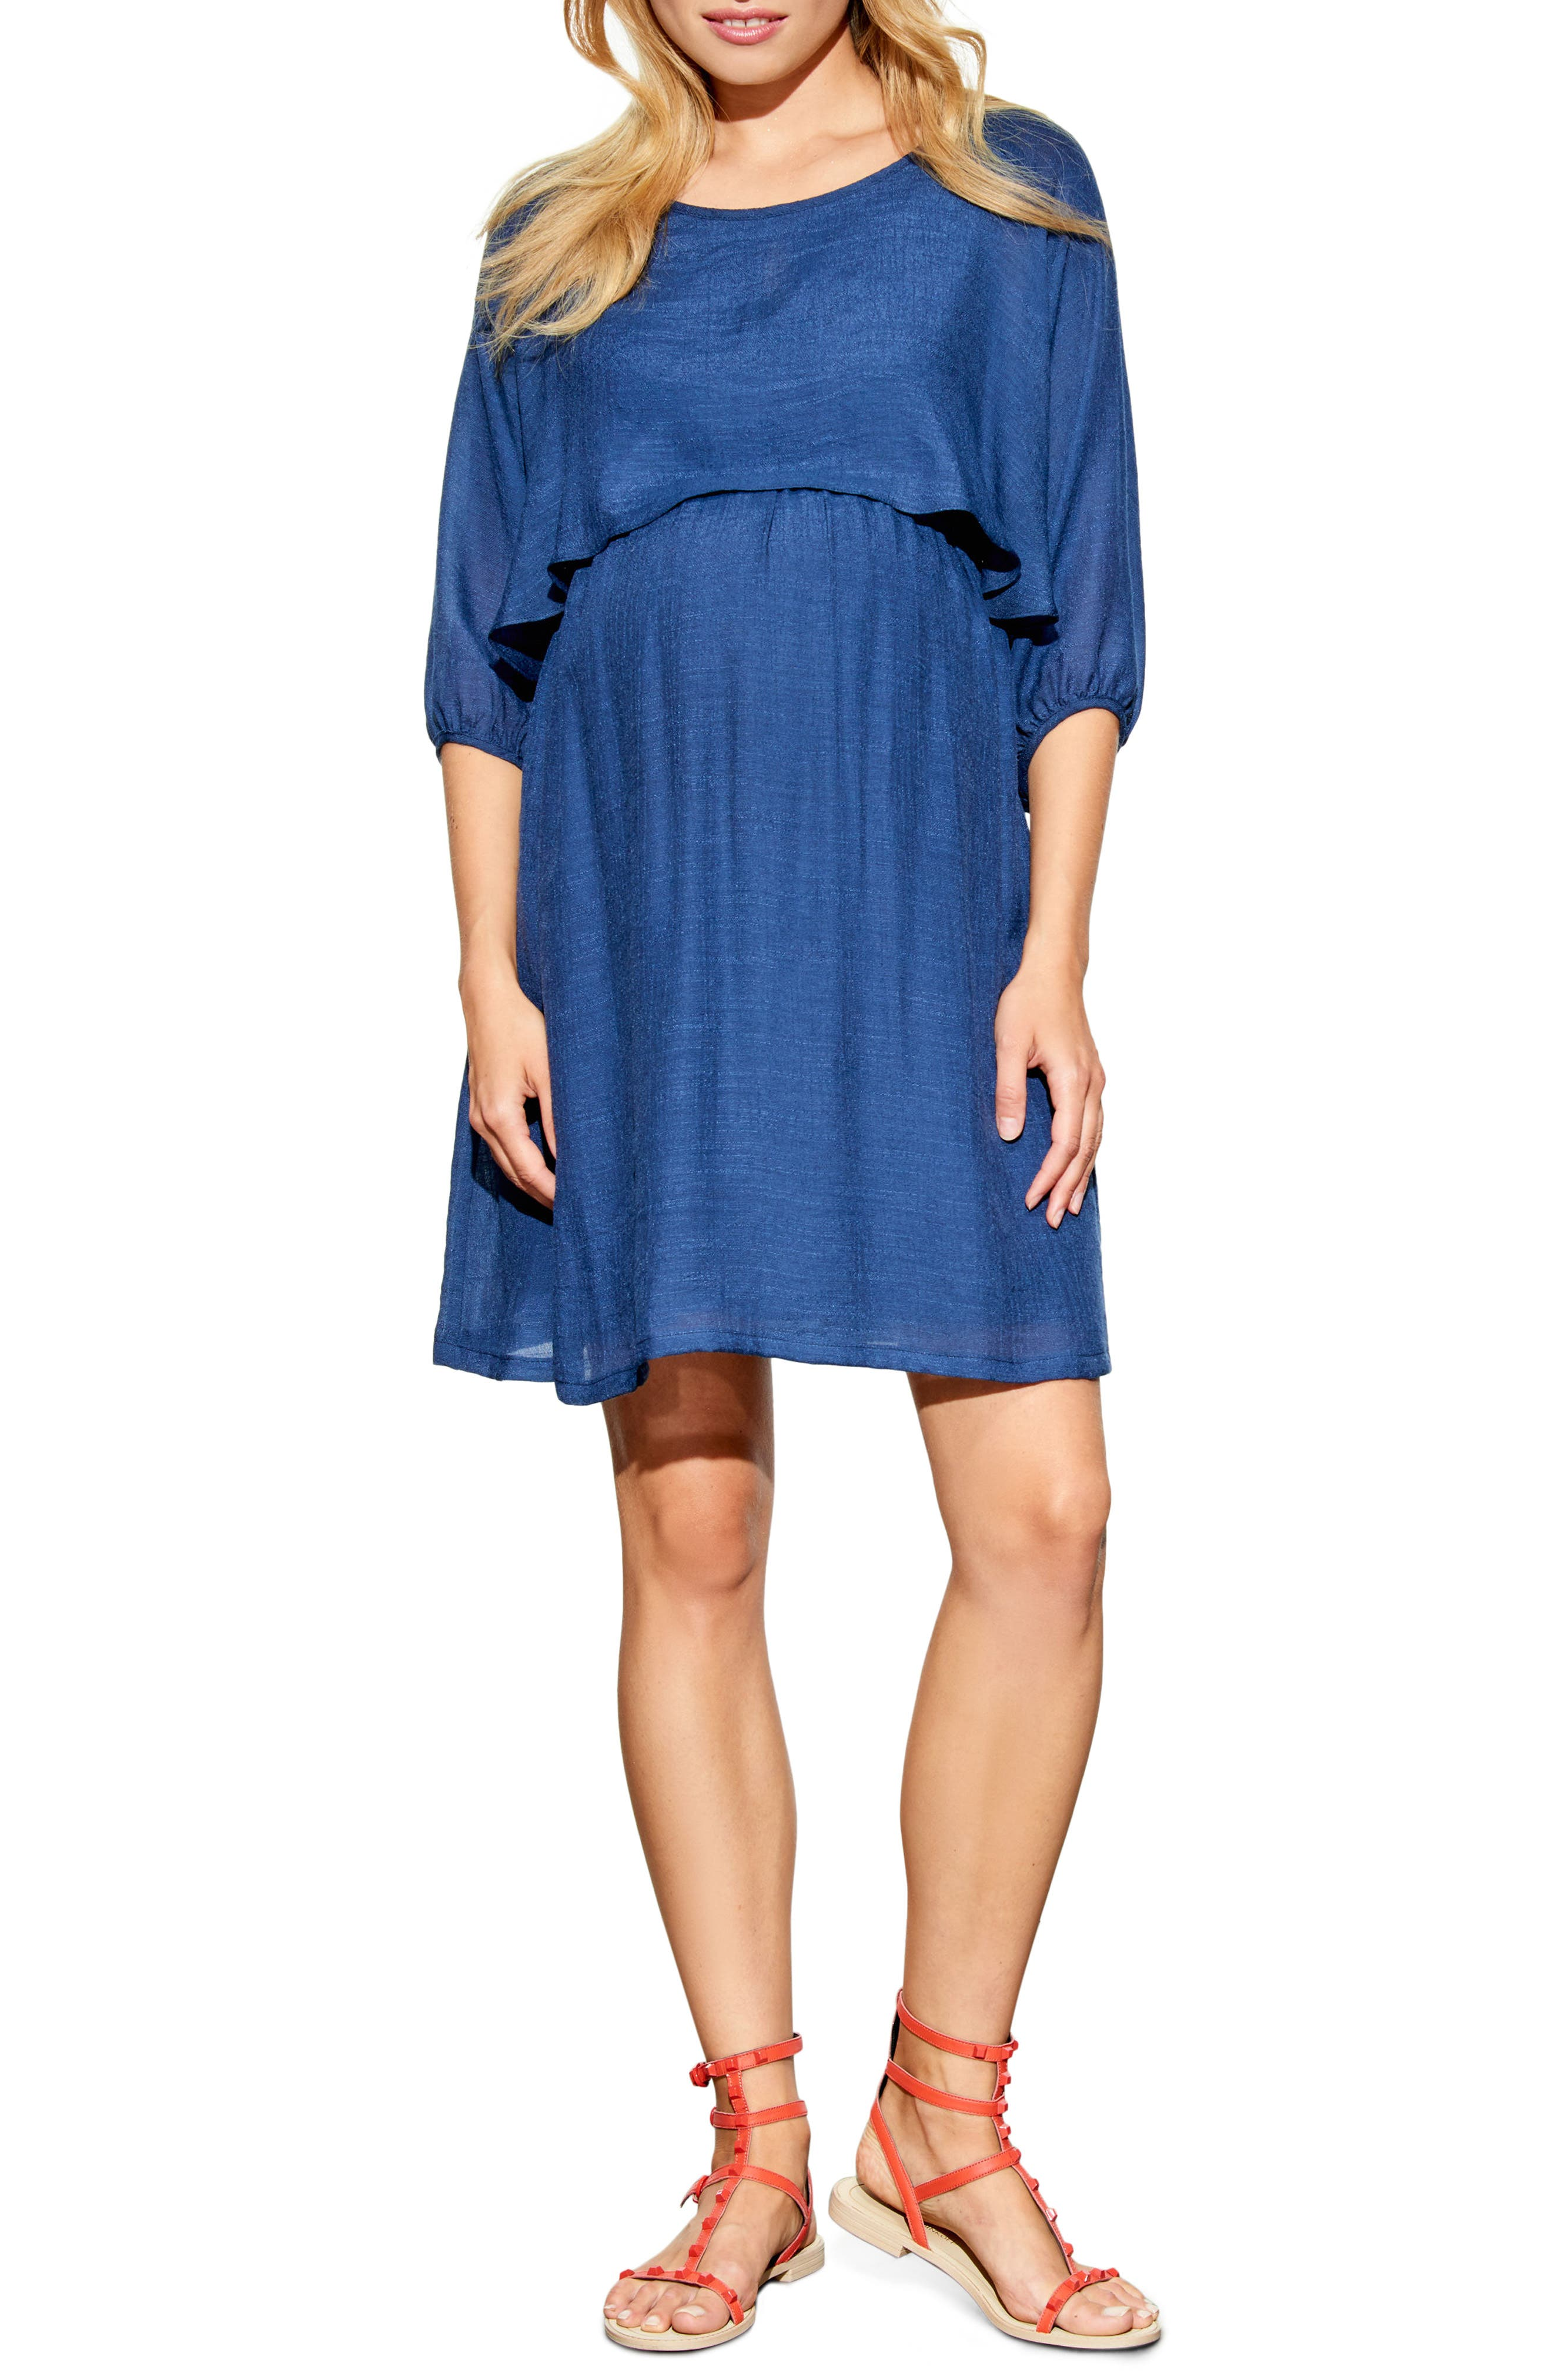 Ruffle Overlay Maternity/Nursing Dress,                         Main,                         color, Navy